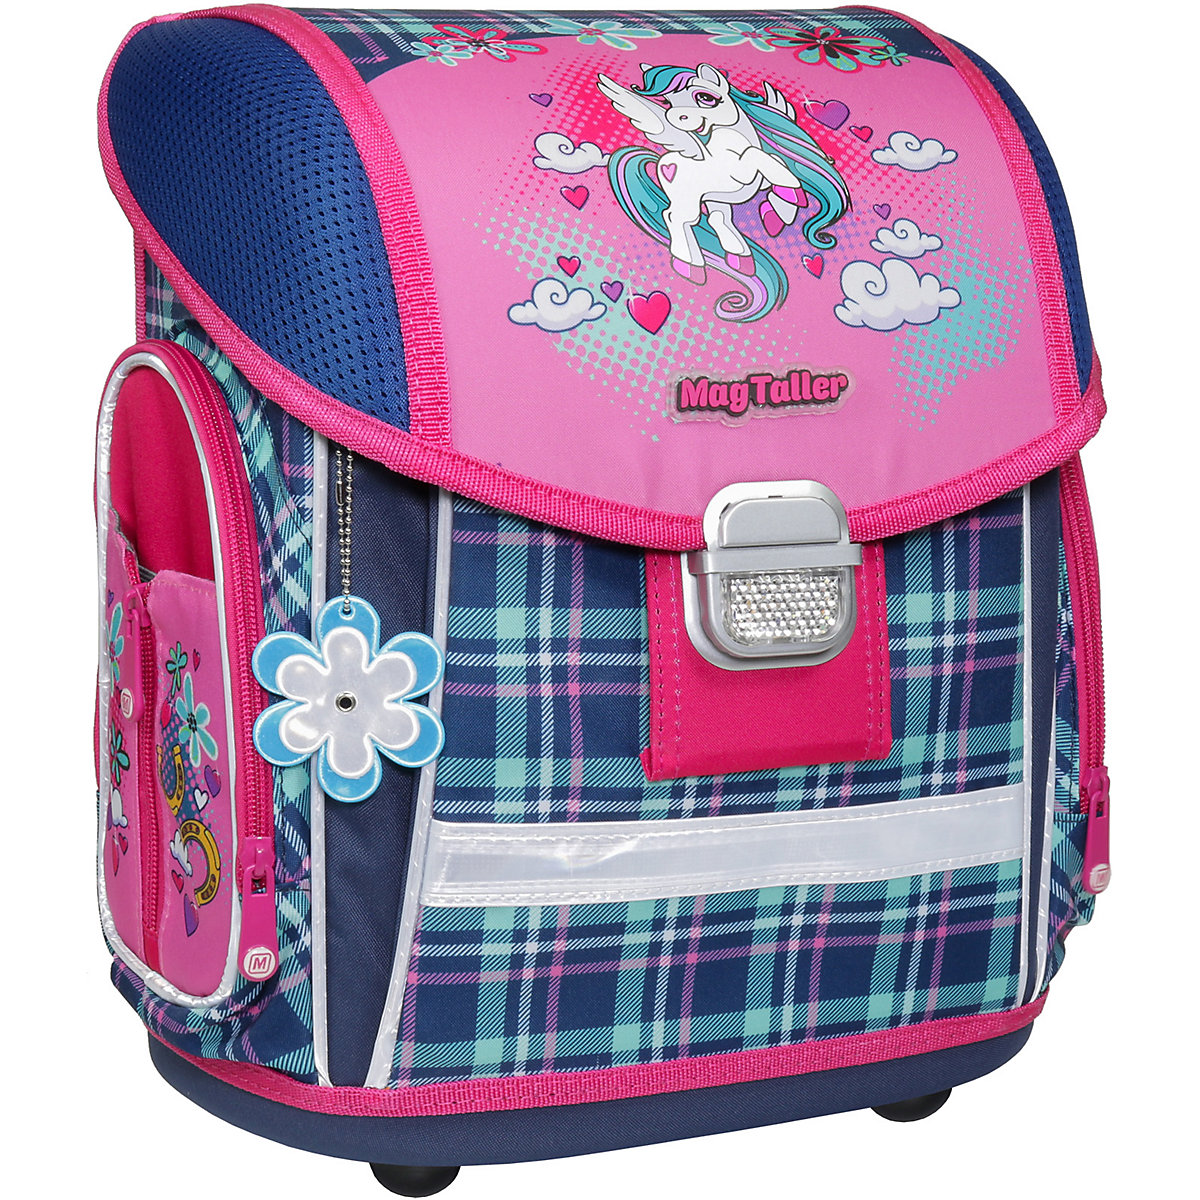 School Bags MAGTALLER 11154892 schoolbag backpack knapsacks orthopedic bag for boy and girl animals flower sprints school bags magtaller 11154976 schoolbag backpack knapsacks orthopedic bag for boy and girl animals flower sprints